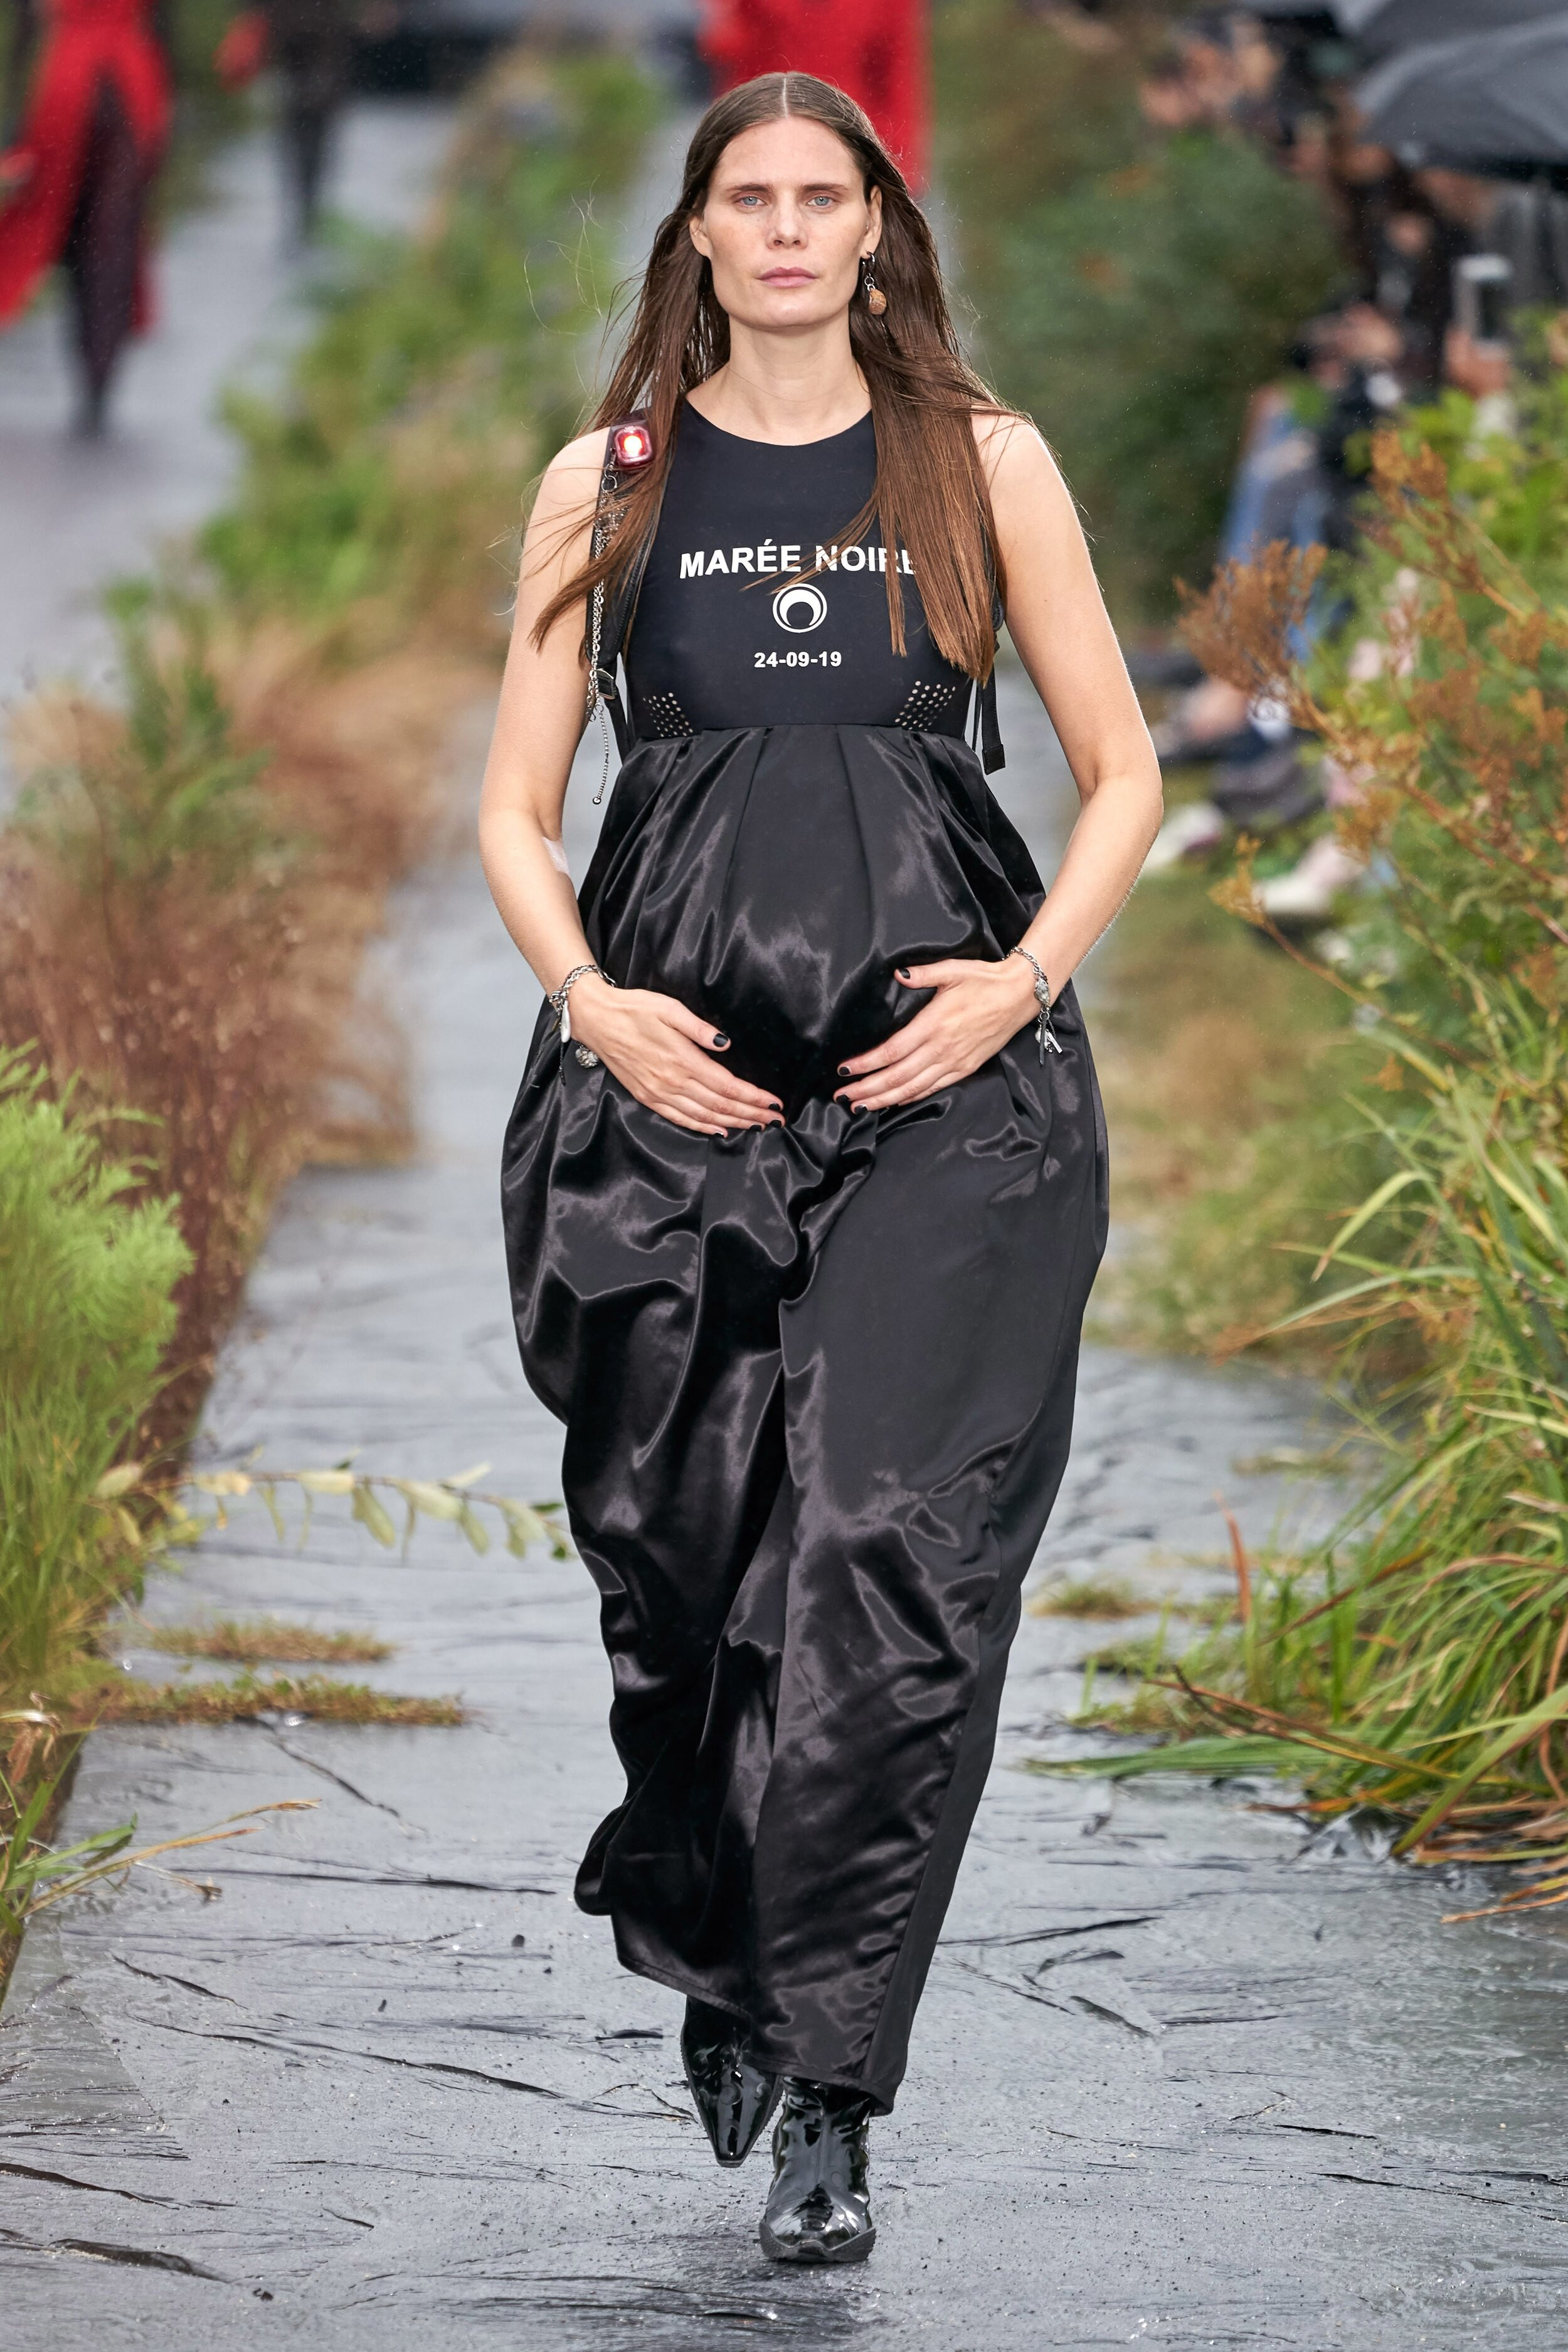 Fascinating Designers: Marine Serre - Come read about the woman who is reinventing upcylcing and making dystopias fashionable.